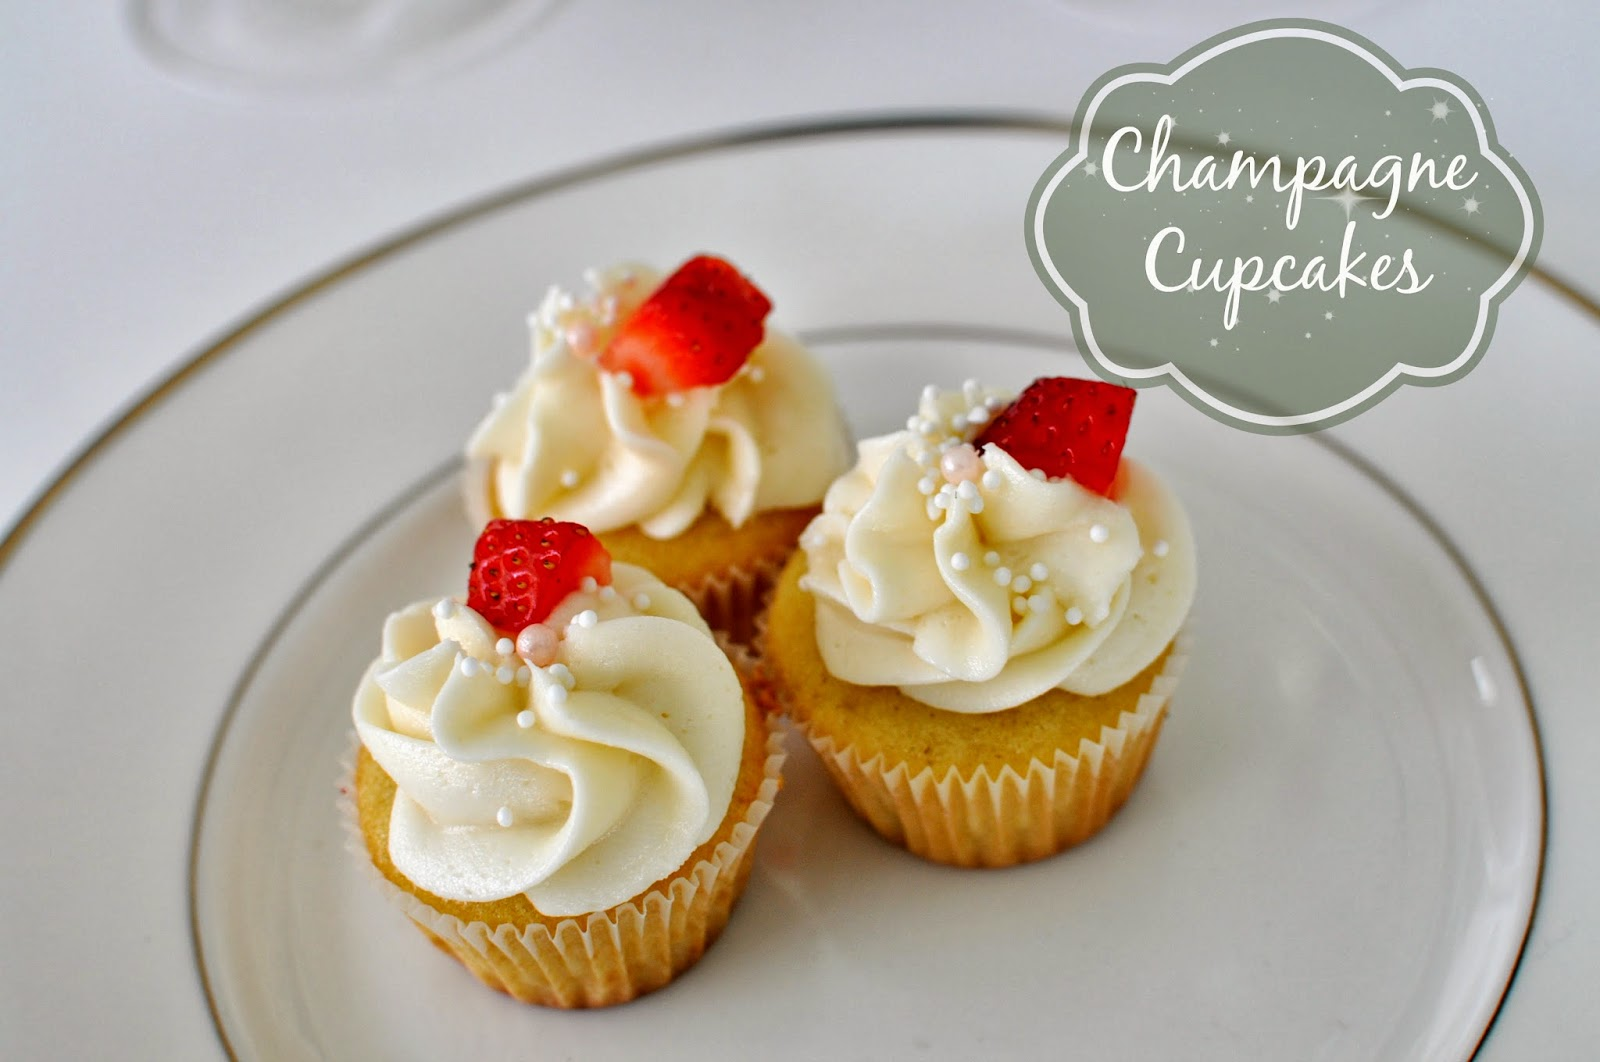 Champagne Cupcakes: